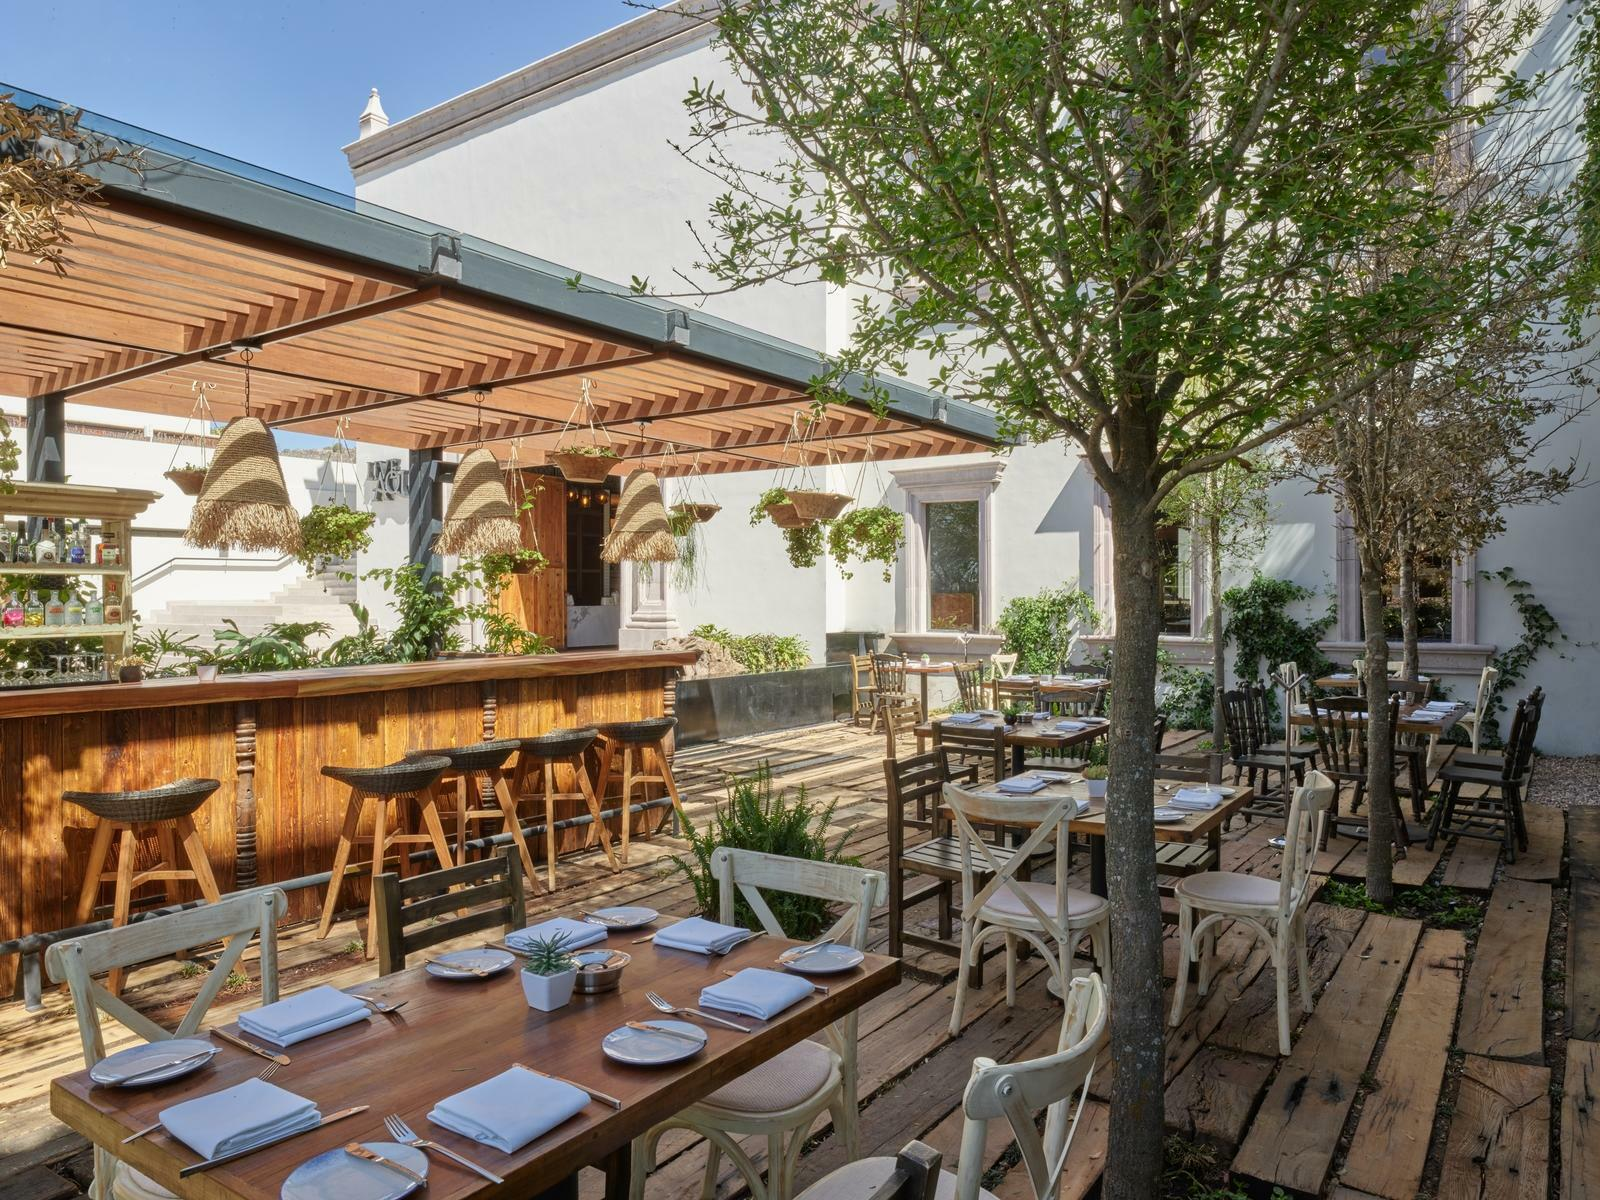 outdoor restaurant with dining tables and bar